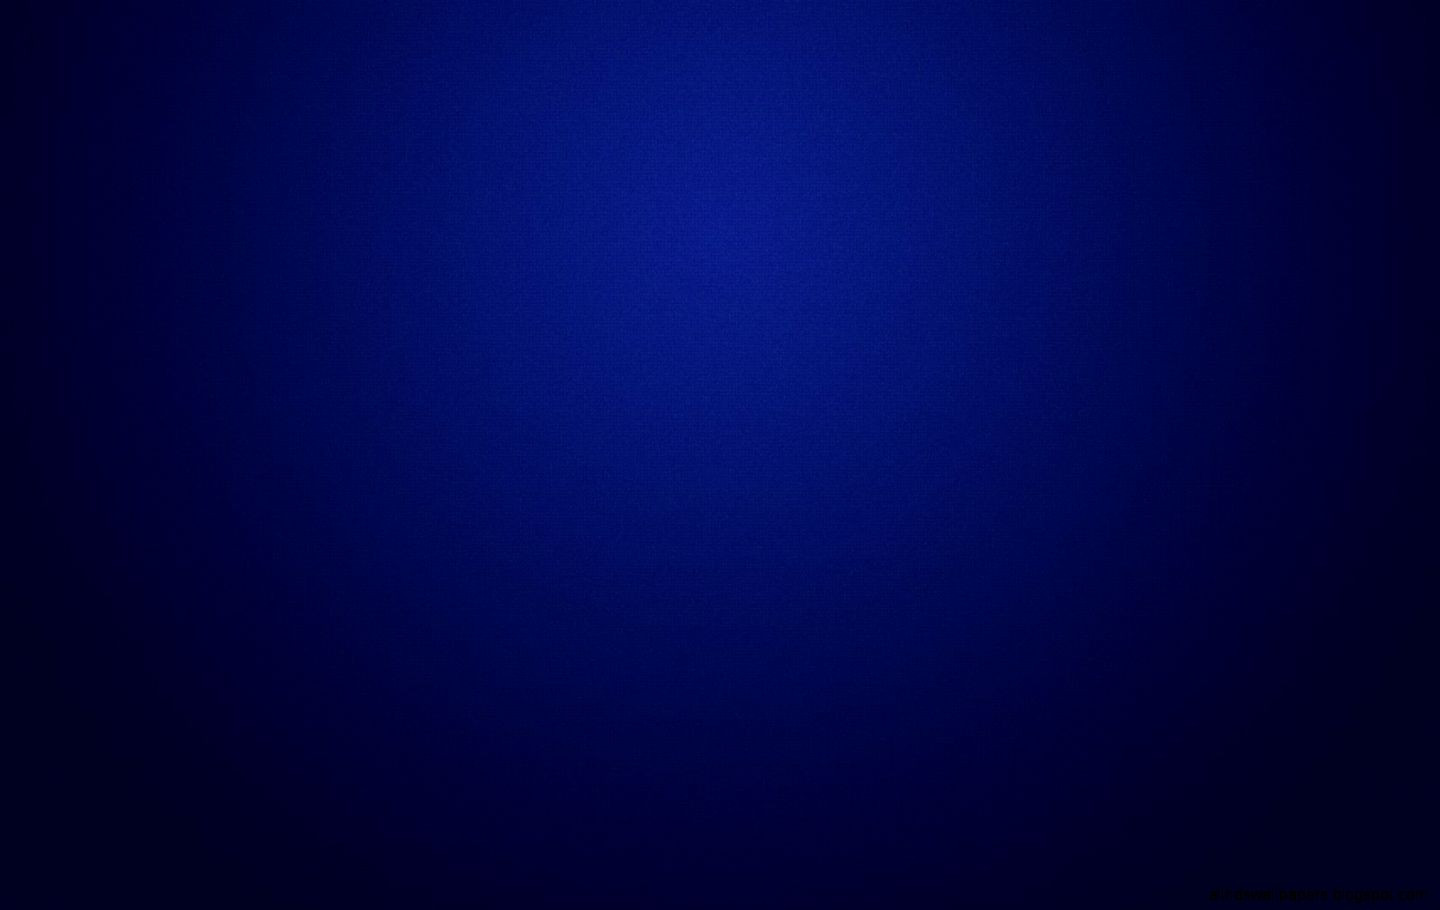 navy blue background wallpaper all hd wallpapers 9